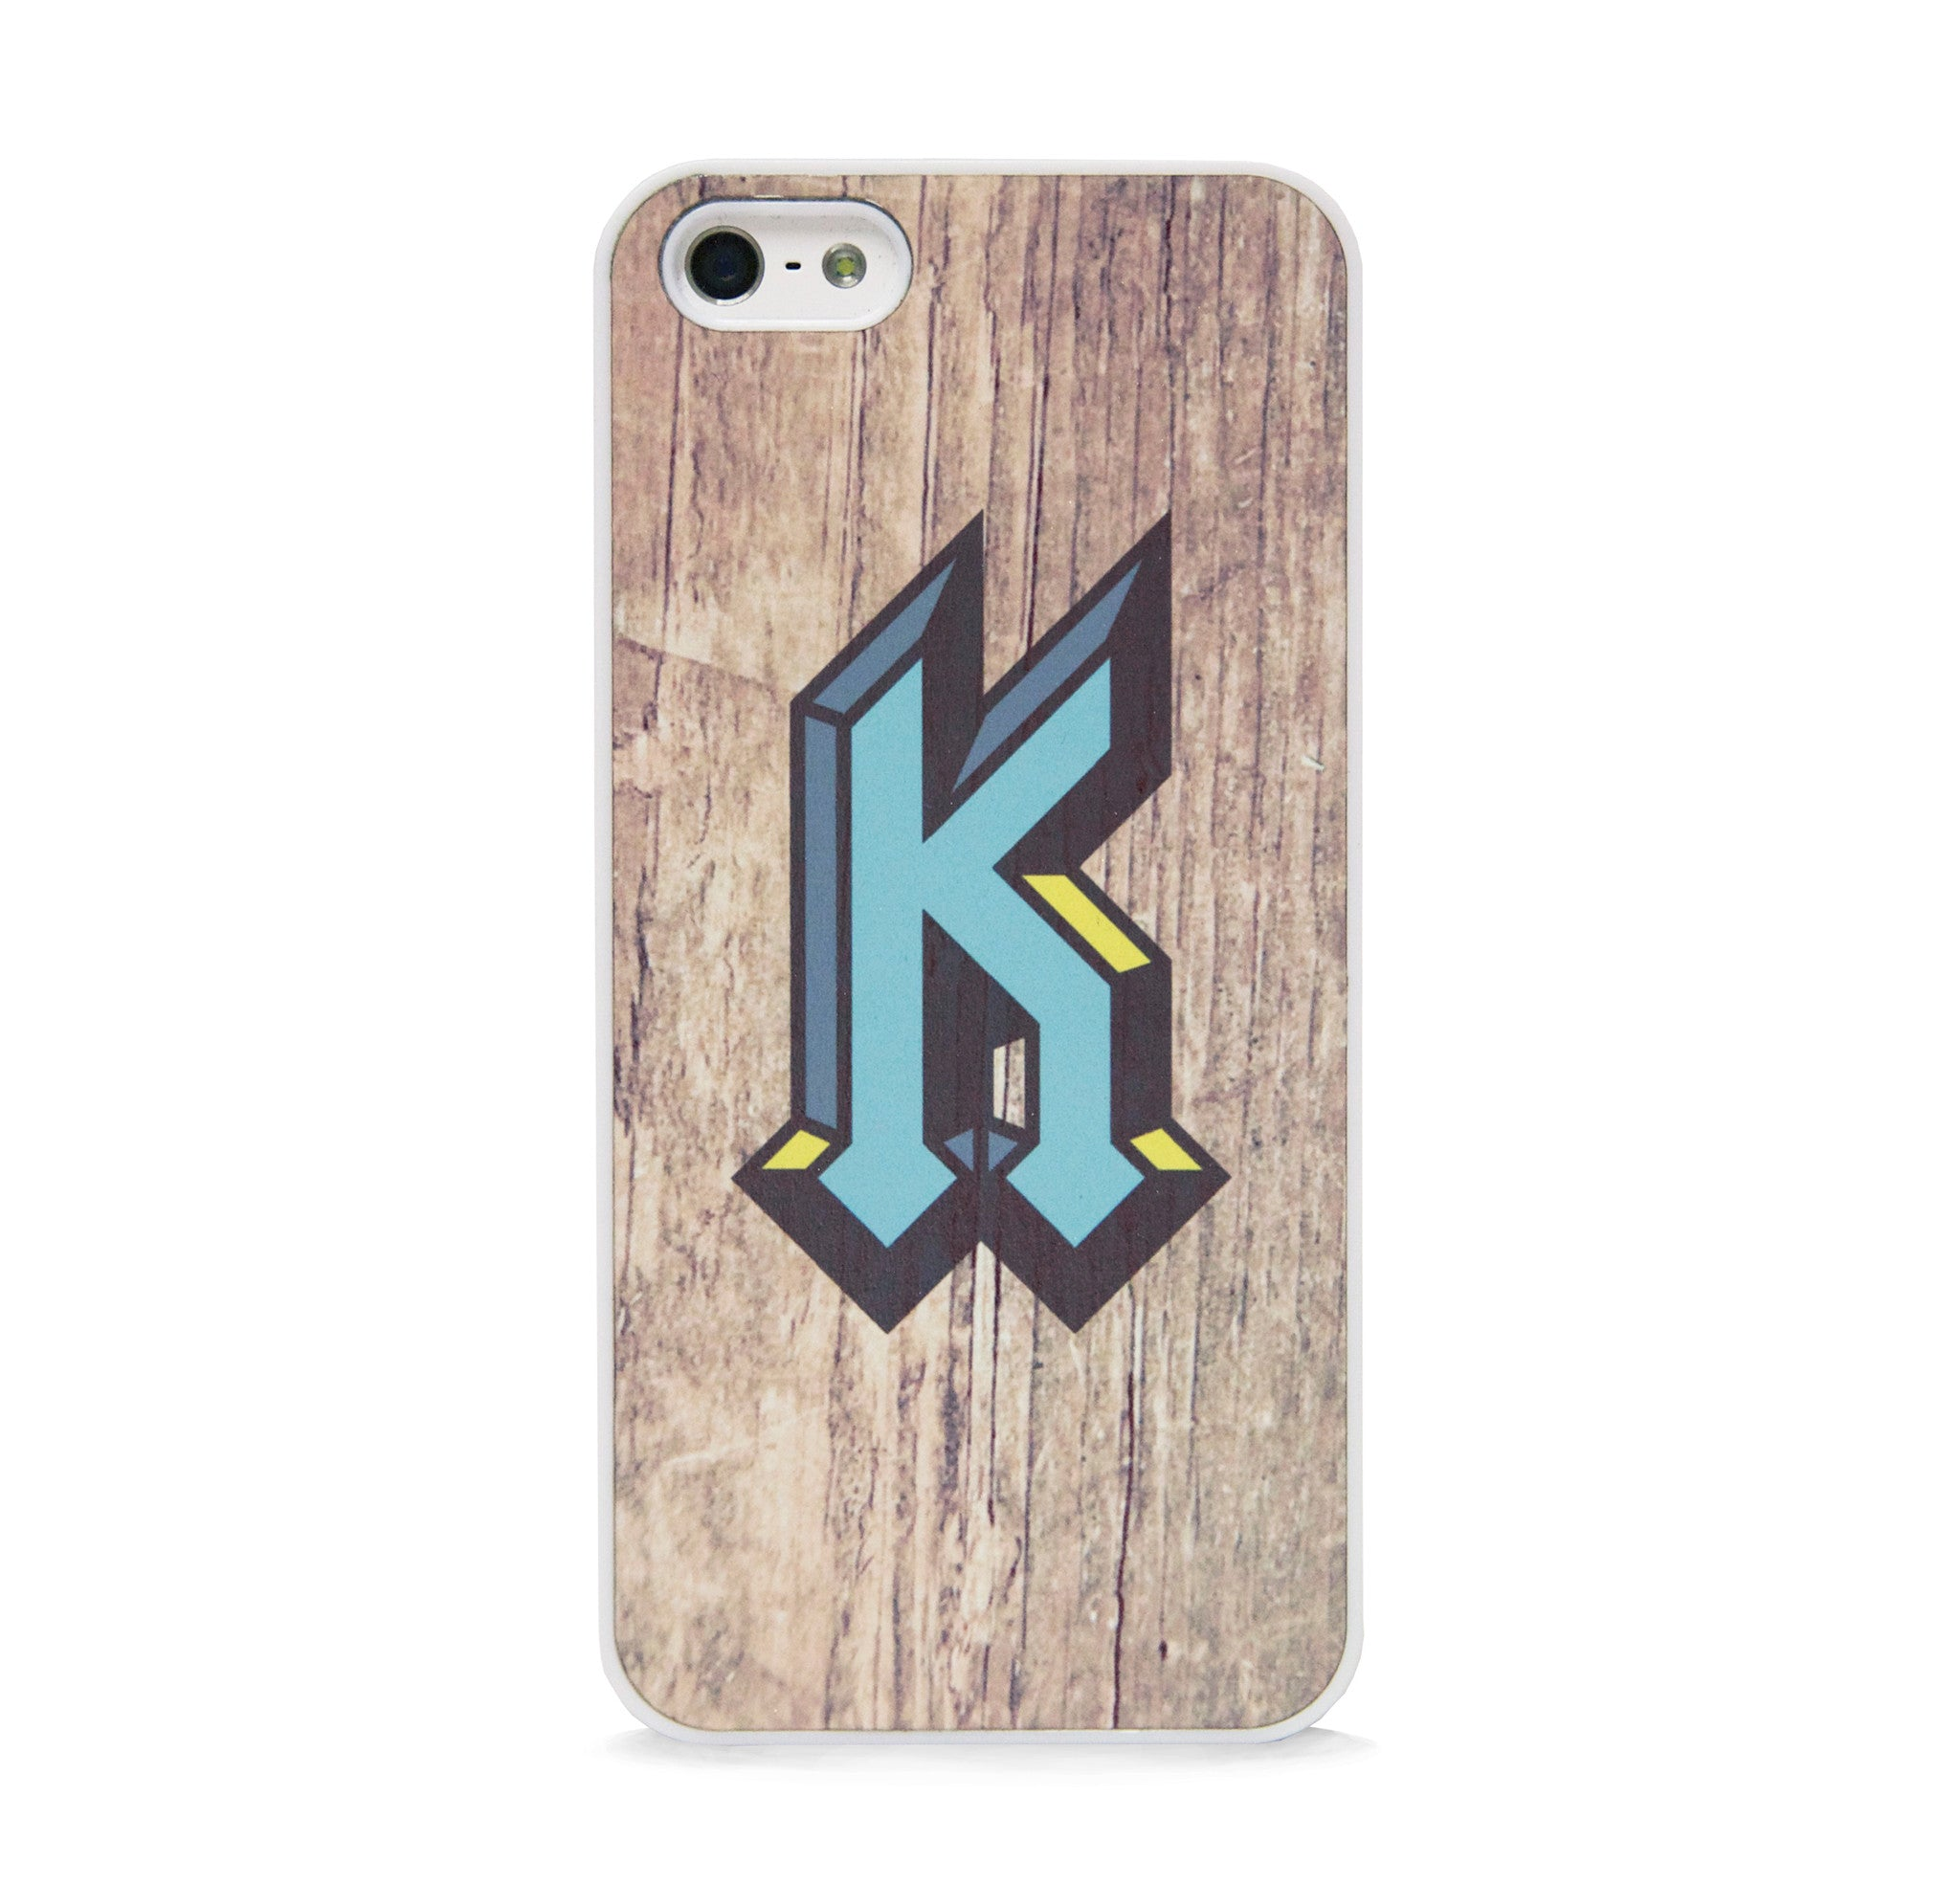 INITIAL K FOR IPHONE 5/5S